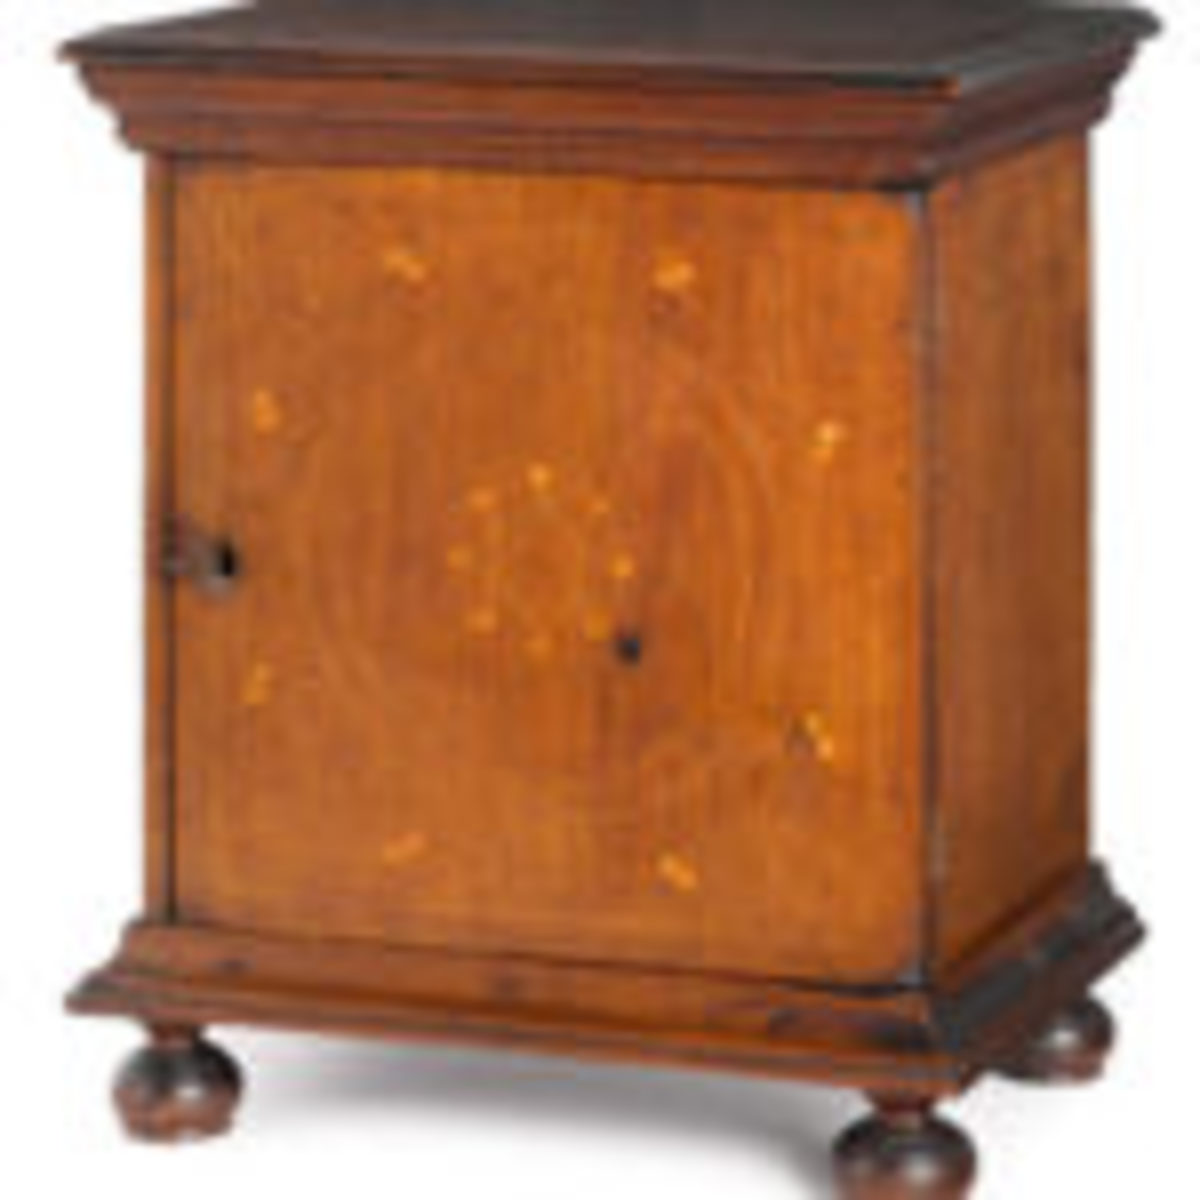 Chester County, Pennsylvaniawalnut spice chest, circa 1755, provenance: Titus Geesey, $67,100